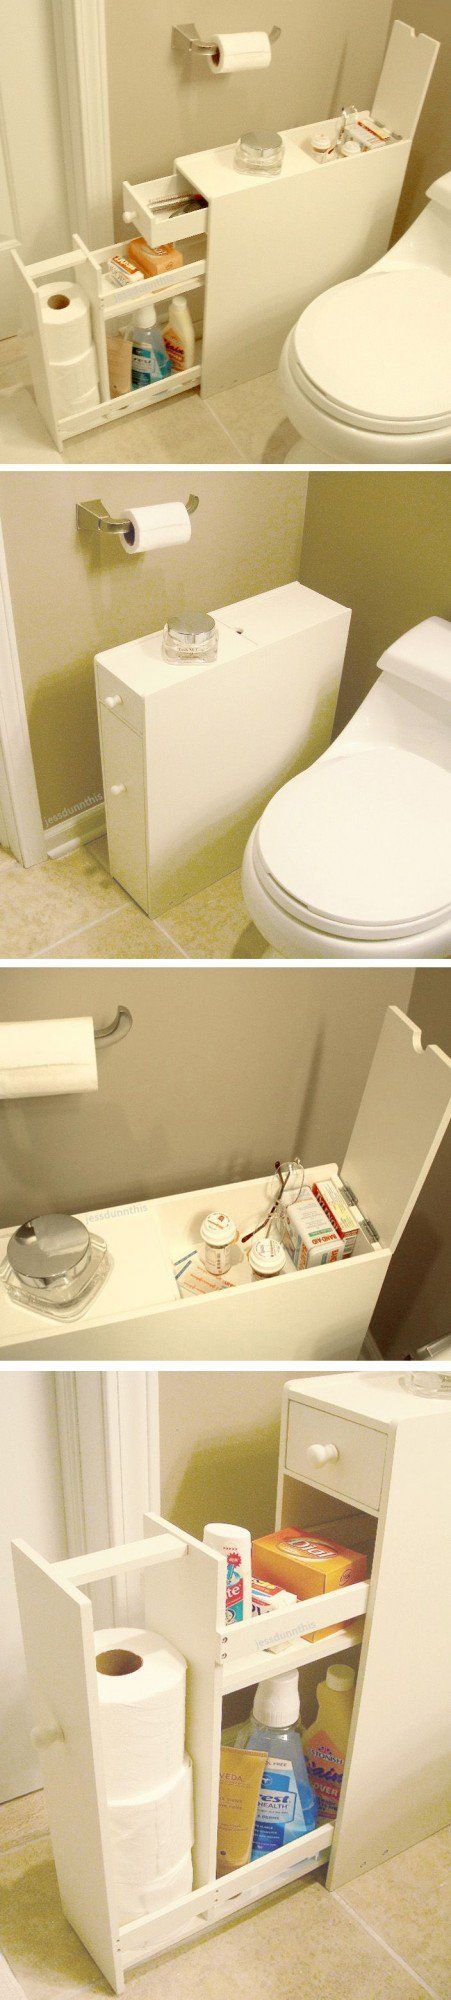 best 10 small bathroom storage ideas on pinterest bathroom